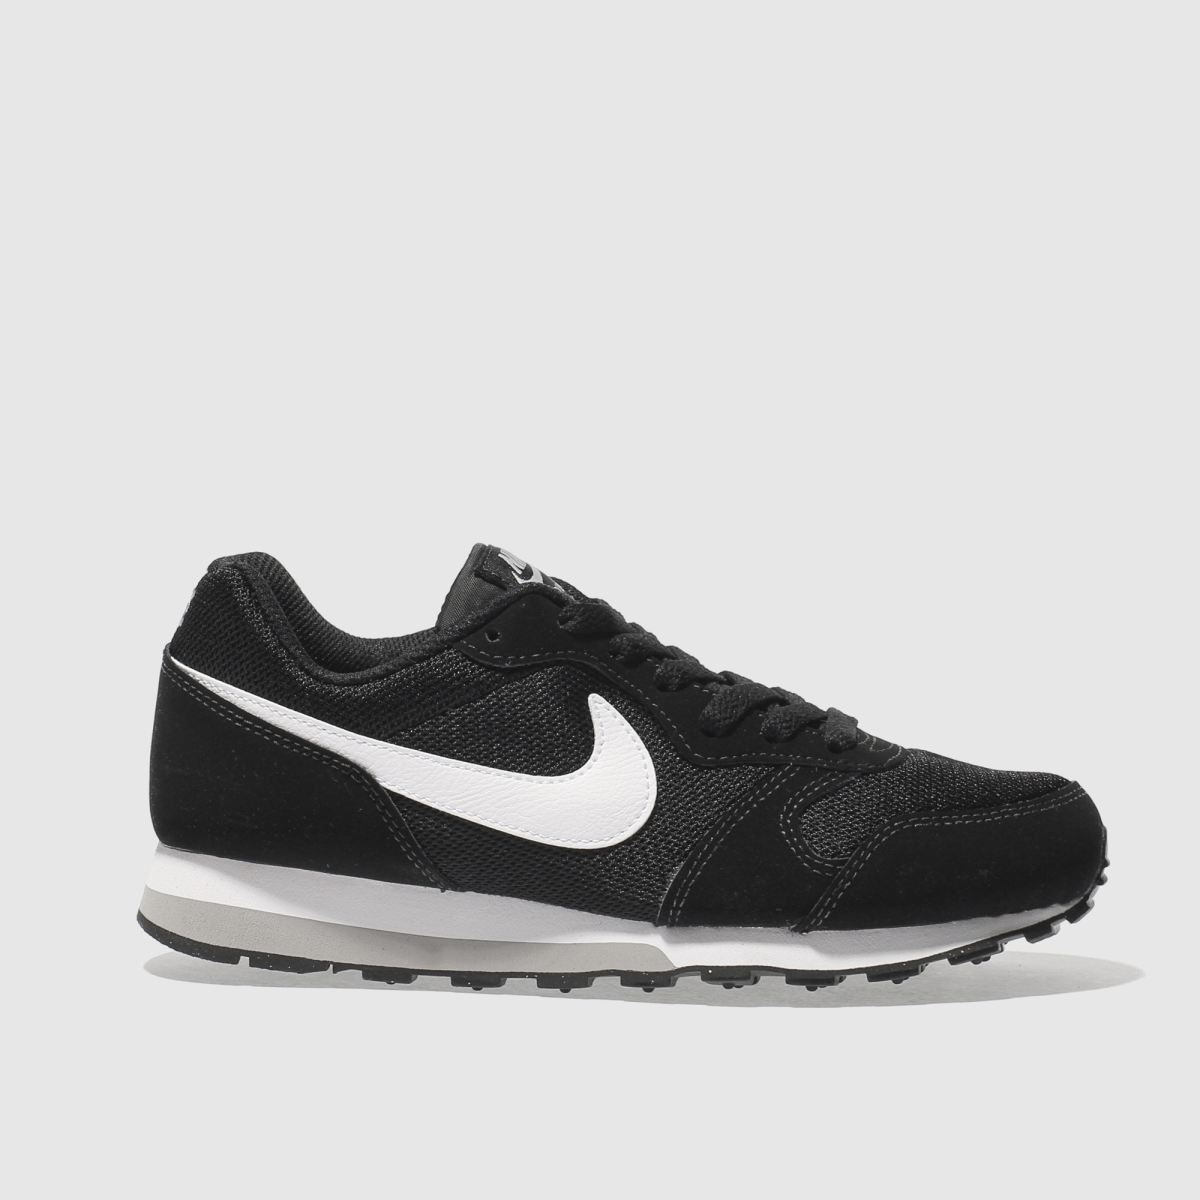 nike black & white md runner 2 Boys Youth Trainers